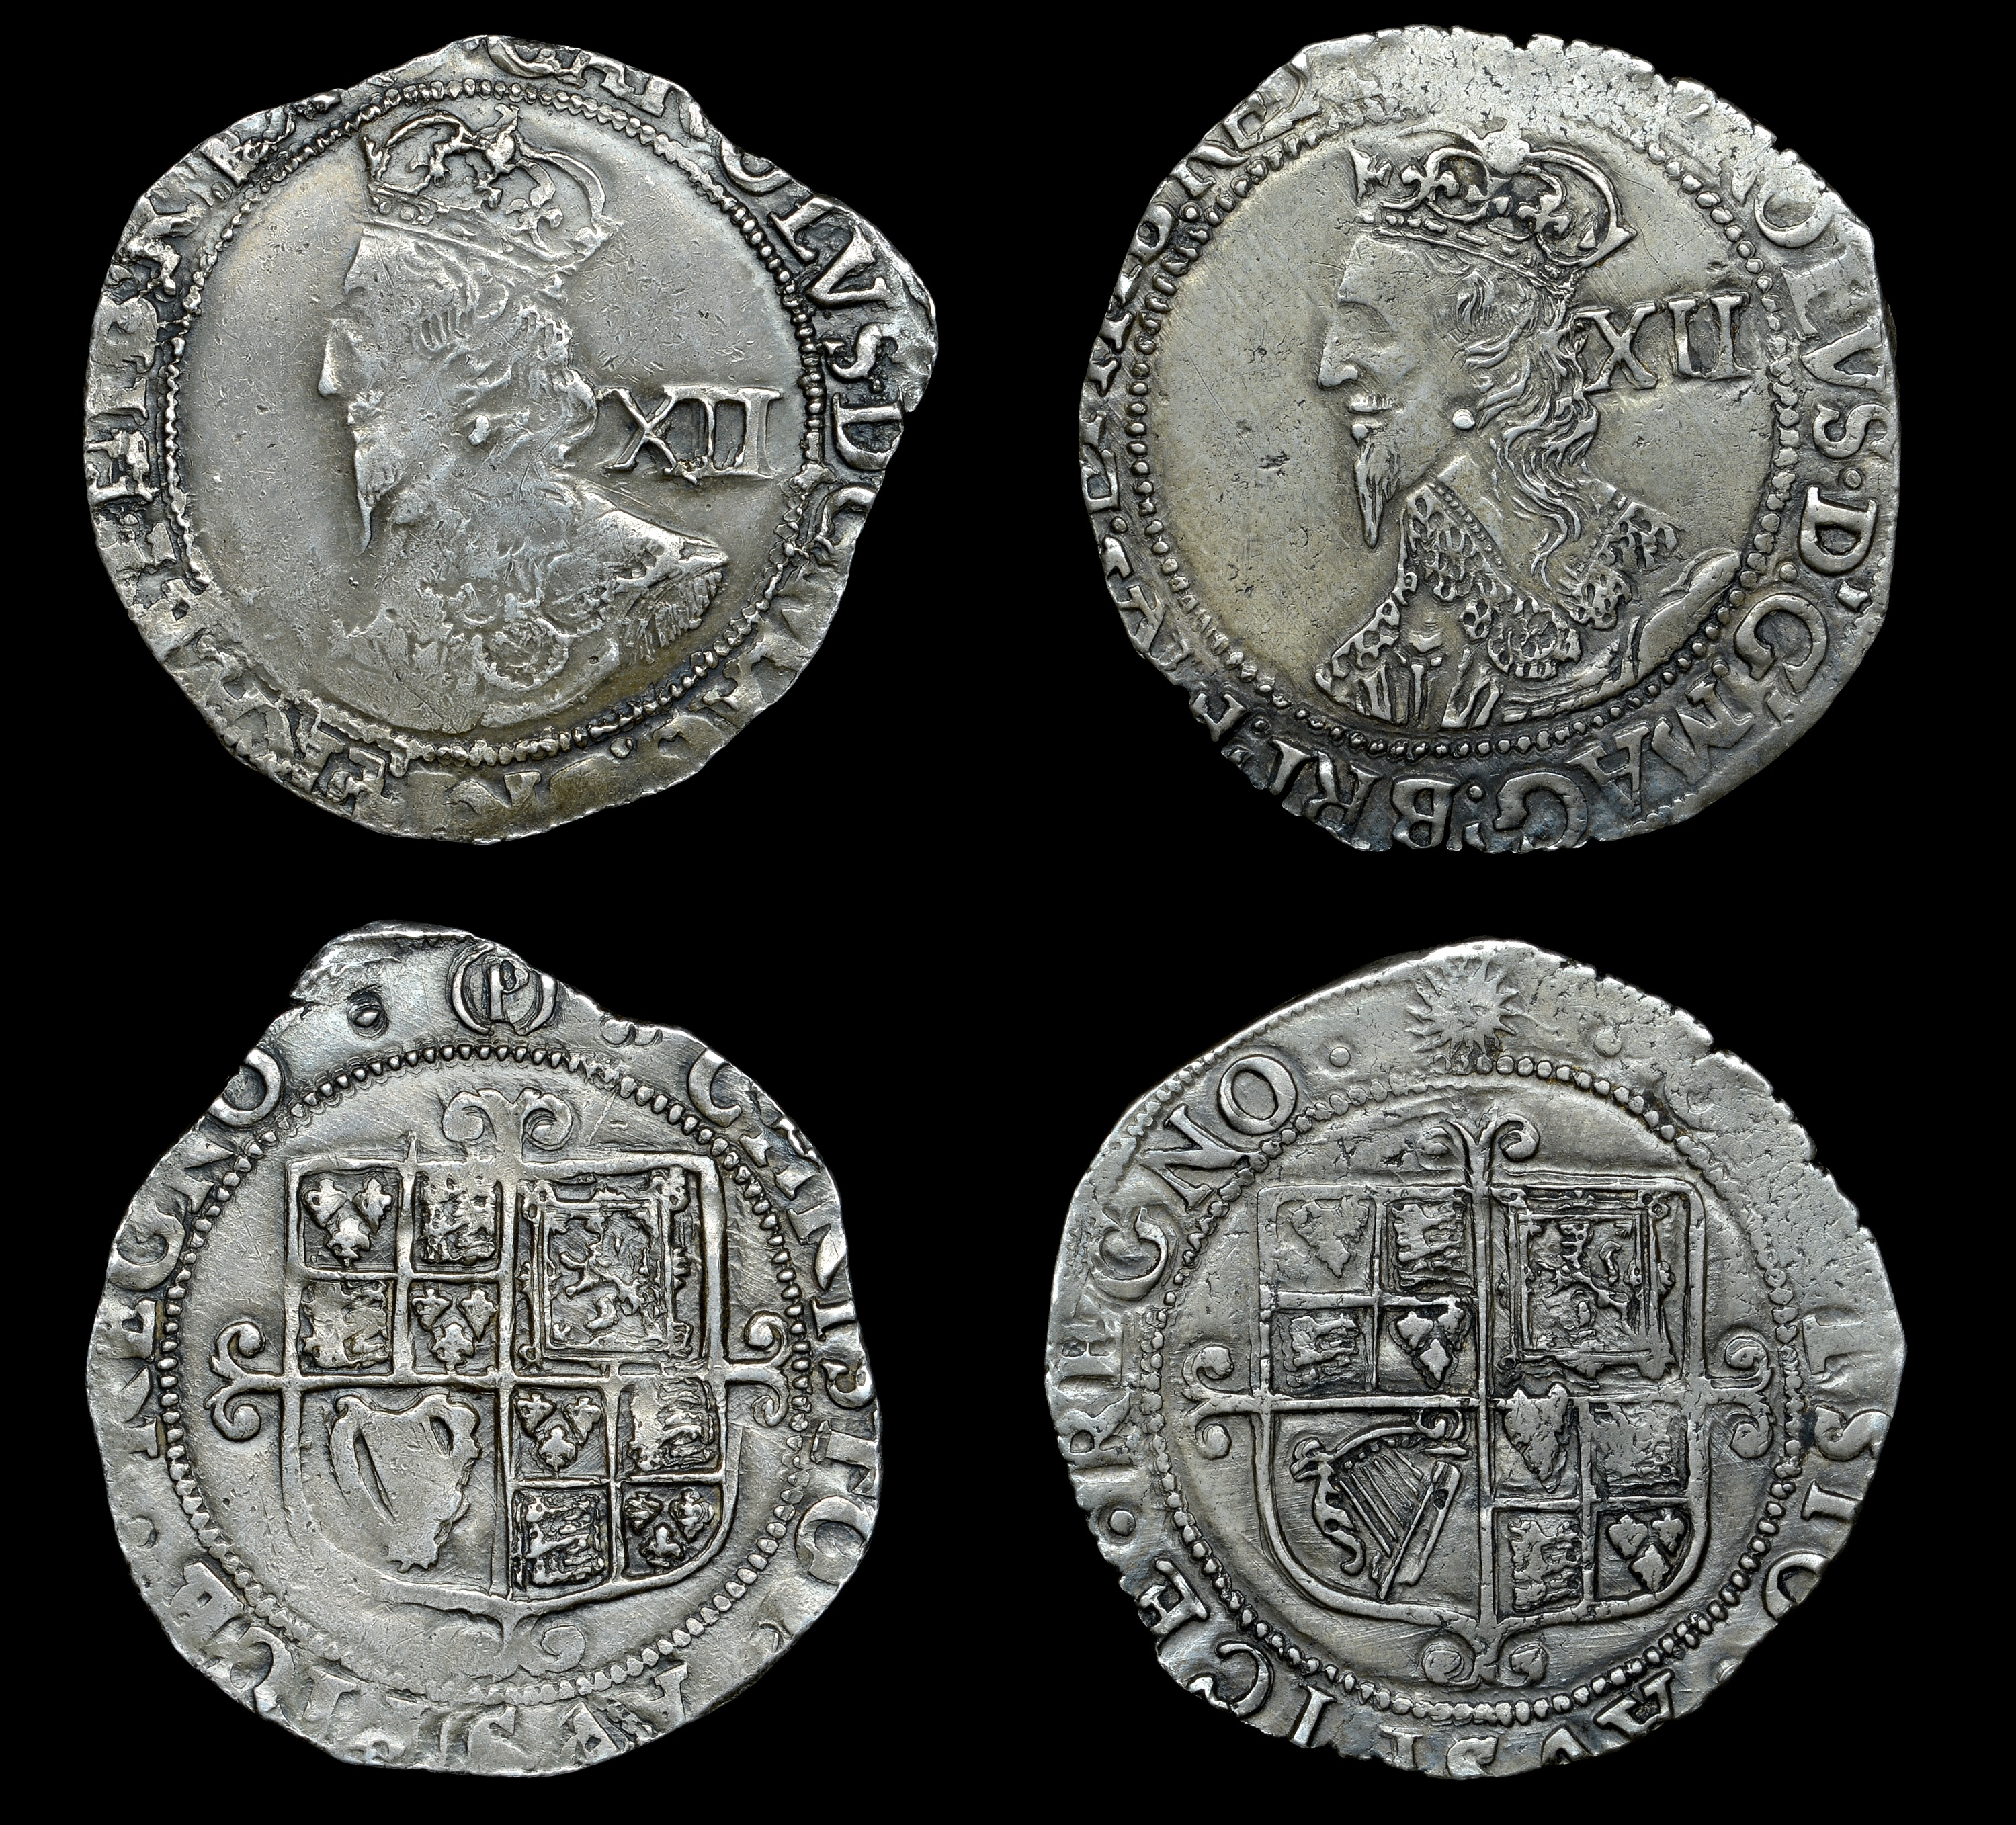 Lot 30 - The Collection of British Coins Formed by the Late Ray Inder (Part IV)